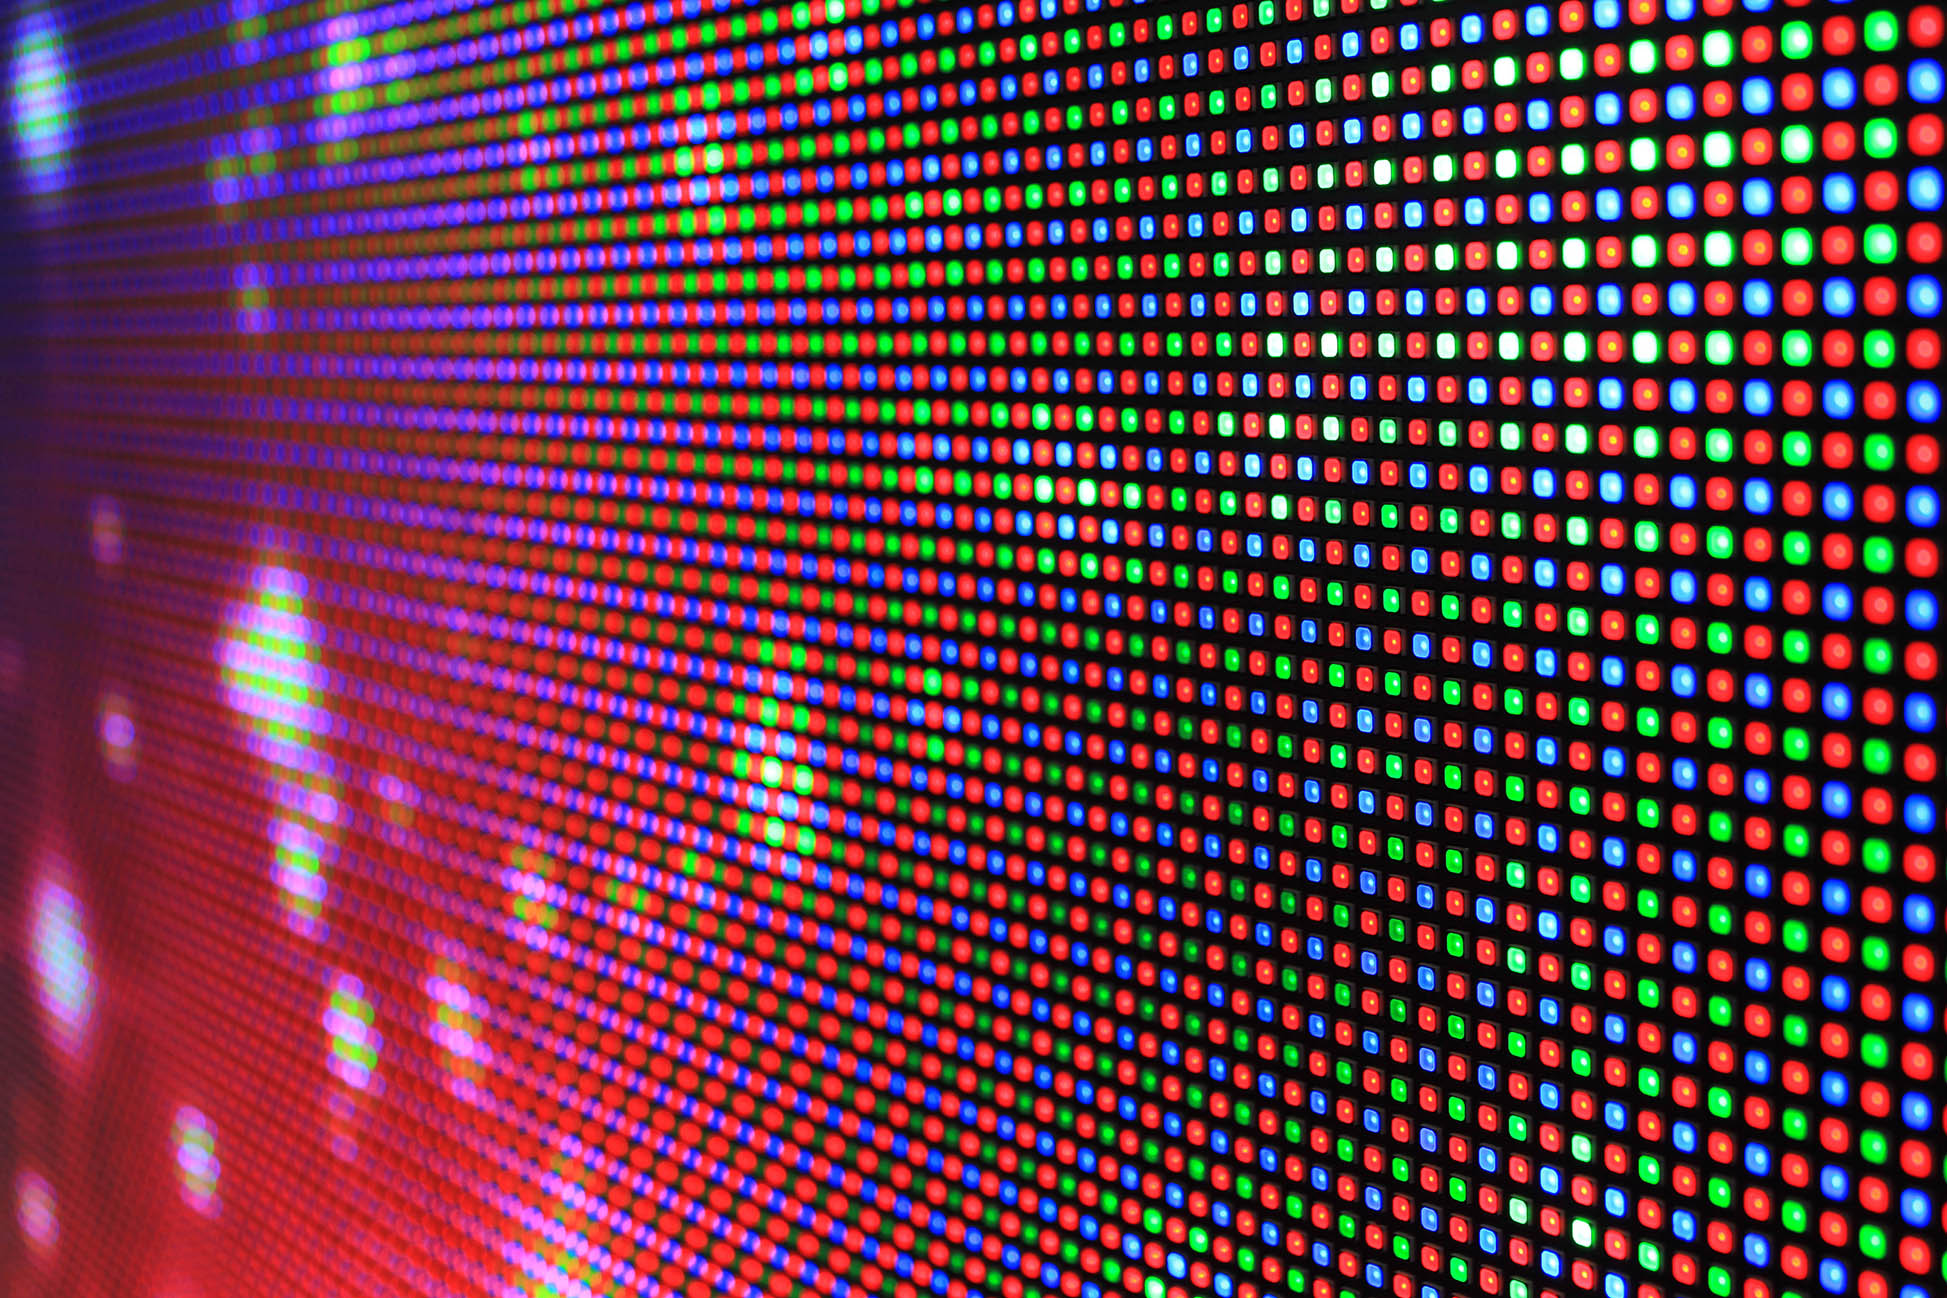 Red blue green led pattern wall of colour space gamut